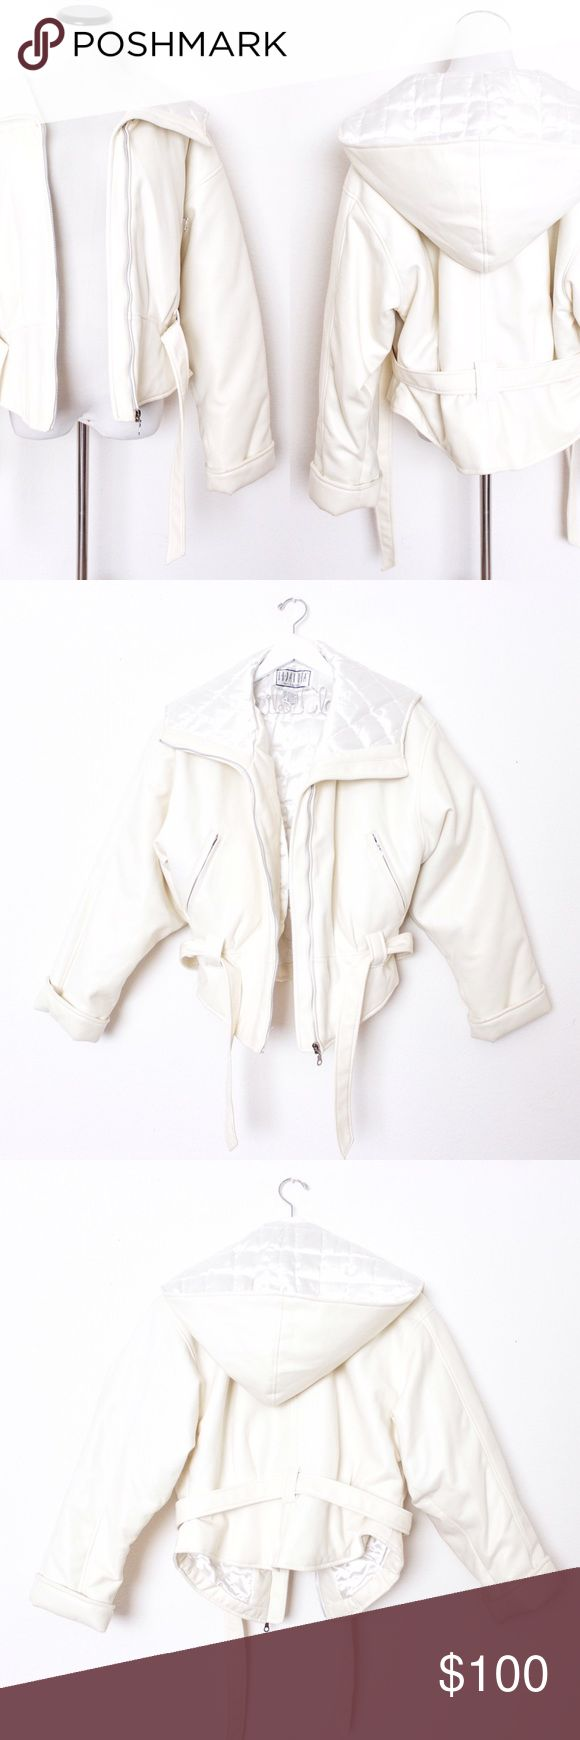 "Cream Vegan Leather Thick Heavy Coat BB Dakota ⑊ Size L  ⌁ Measurements: 20"" length 22"" bust 22"" sleeve 22.5"" shoulder  ⌁ Material: 73.3% polyvinyl chloride 26.7% cotton satin acetate lining  ⌁ Condition: Used. Has some scuffs around the cuffs, a tiny blue stain on shoulder, and makeup stains inside — not noticeable!  Comment below if you have any questions. Please make all offers using the ""offer"" button. No trades. No holds. Comes from a smoke-free/pet-free home. Not responsible for…"